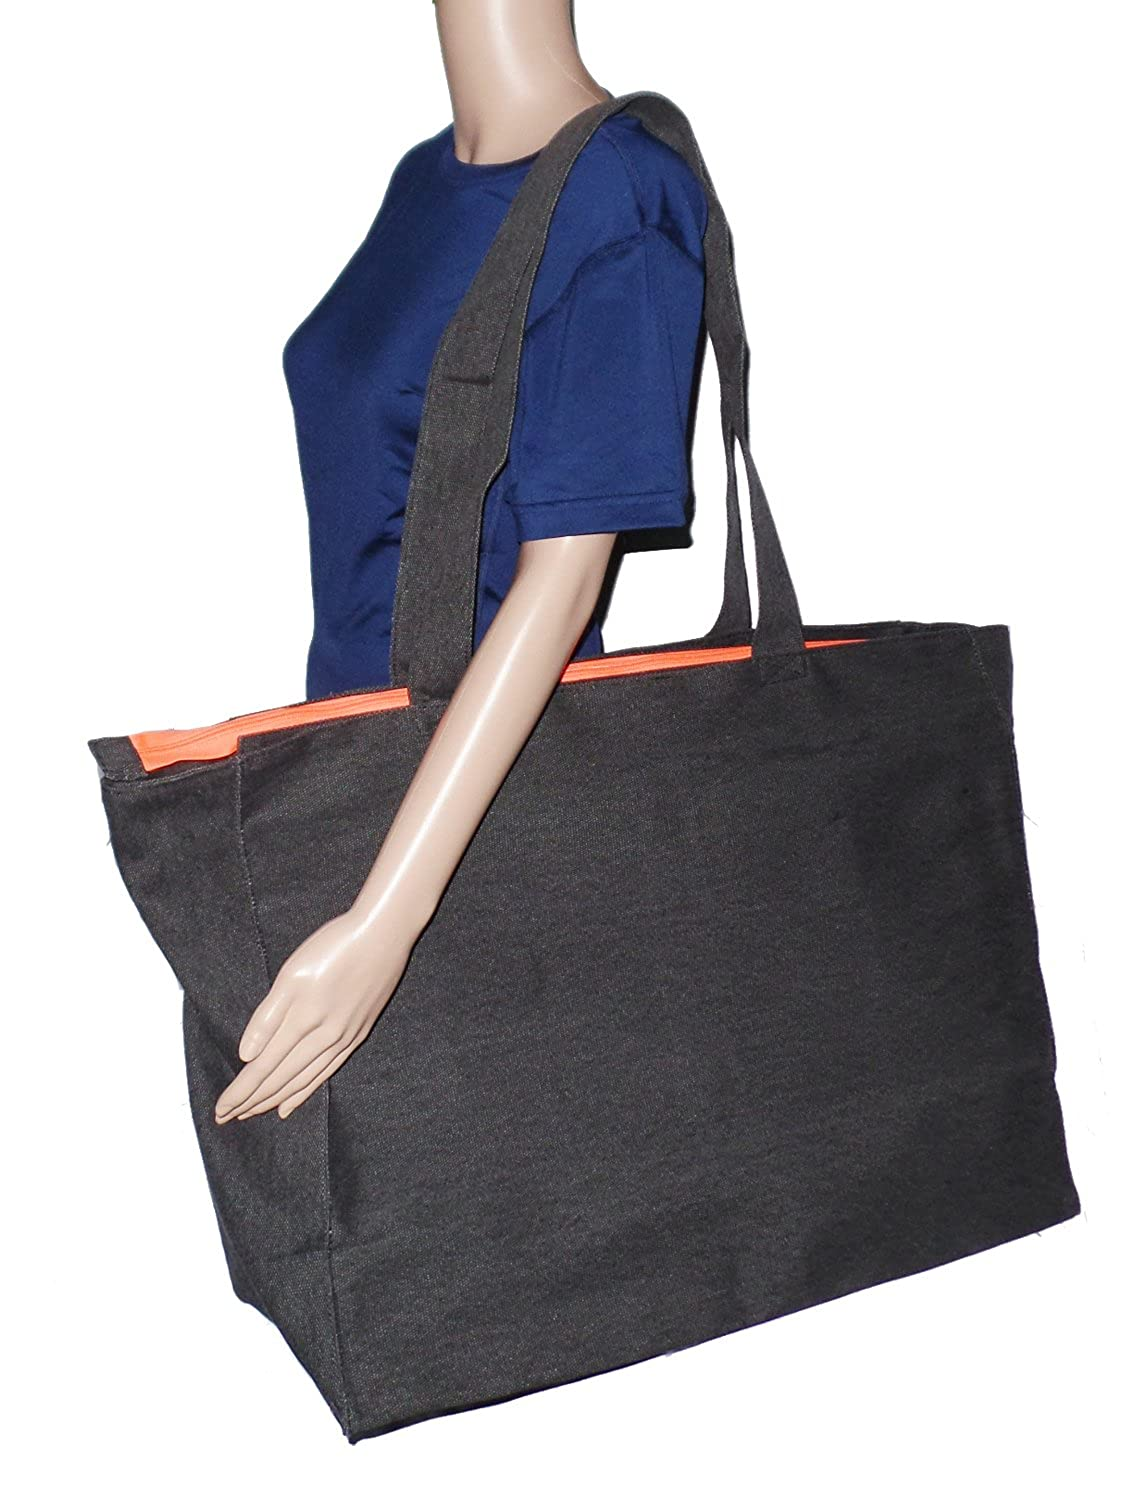 Amazon.com  Extra Large Travel Day Tote Bag Heavy Duty Cotton Twill Zip Top  (Charcoal Gray)  101 Beach 8c496a1bb6d3b